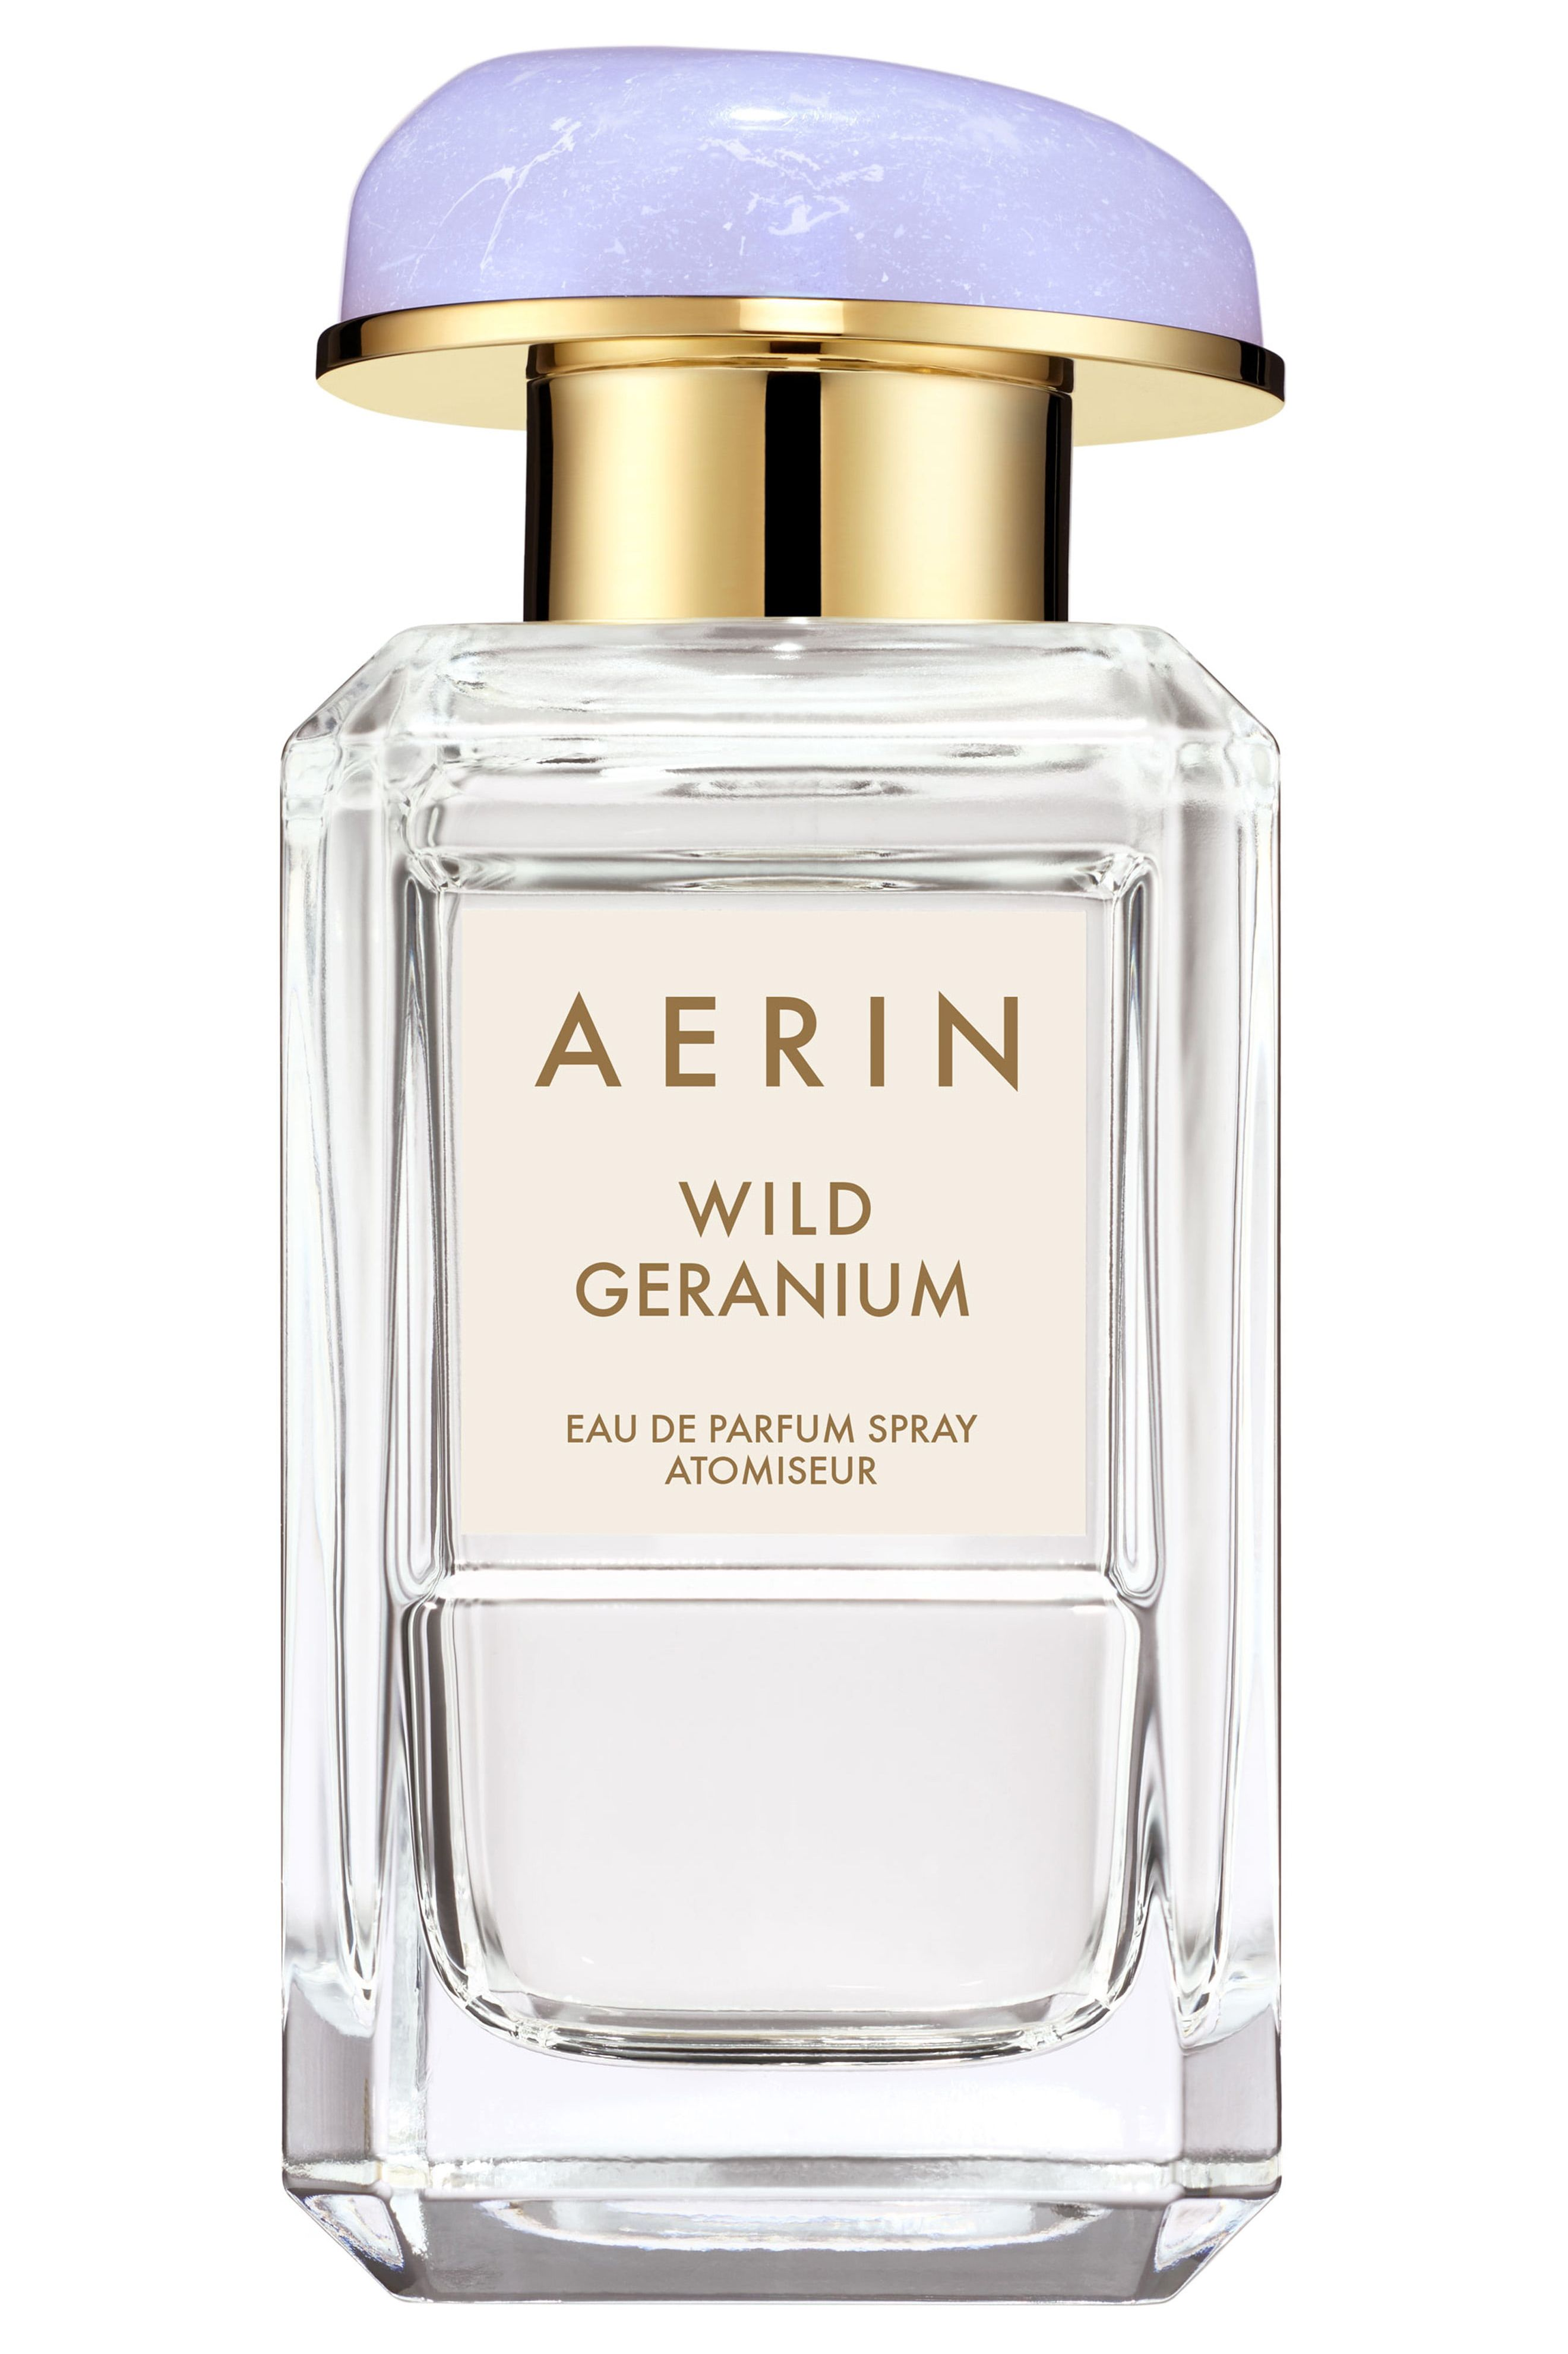 12 Best Floral Perfumes for 2020 - Floral Perfumes and Scents